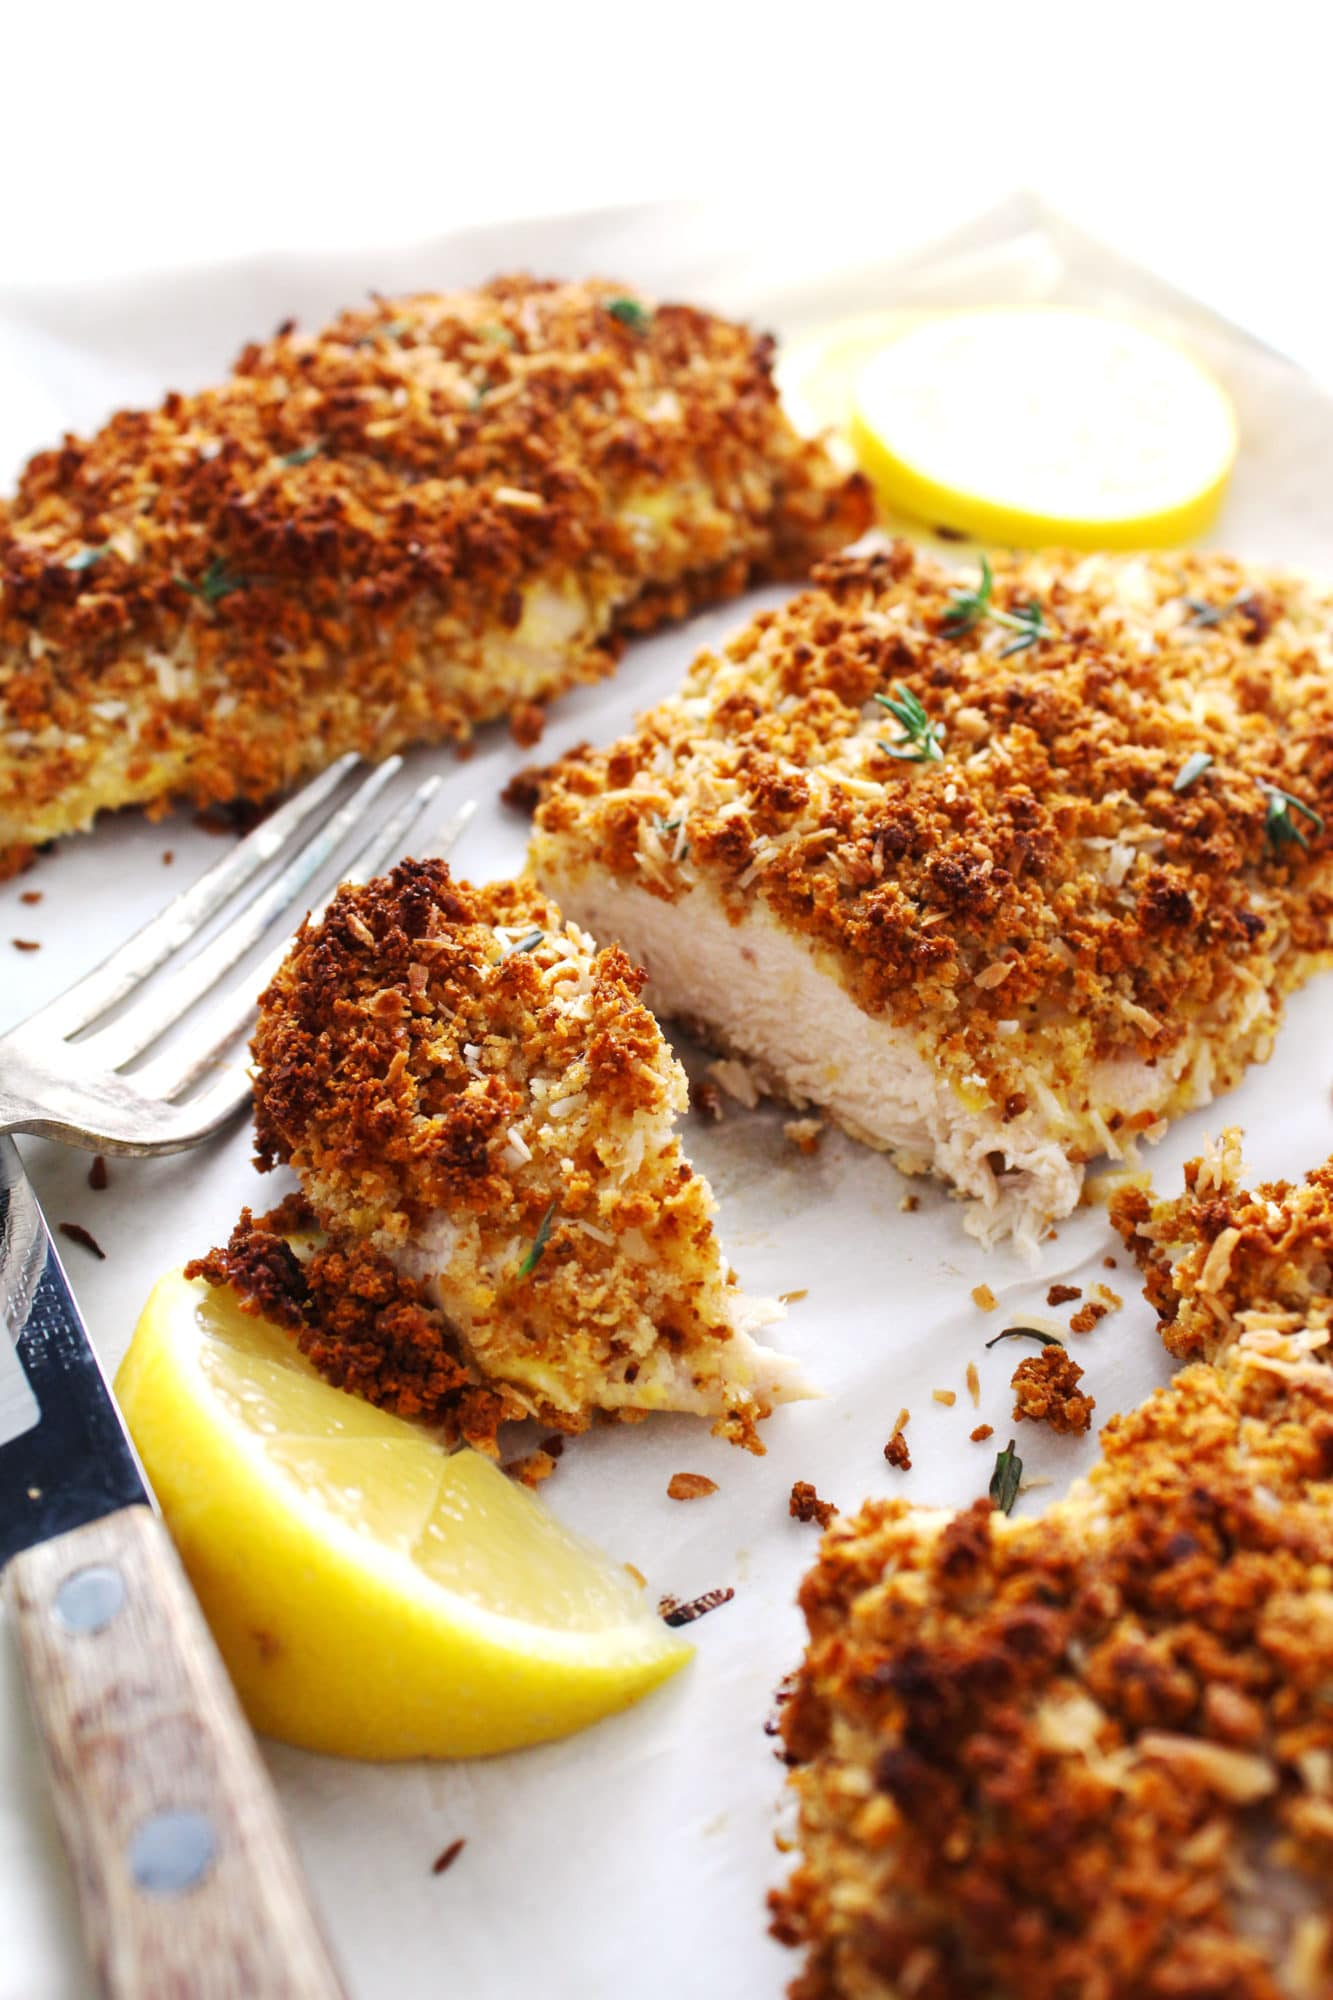 gluten-free breaded coconut chicken sliced in half with lemon wedge and sliver fork